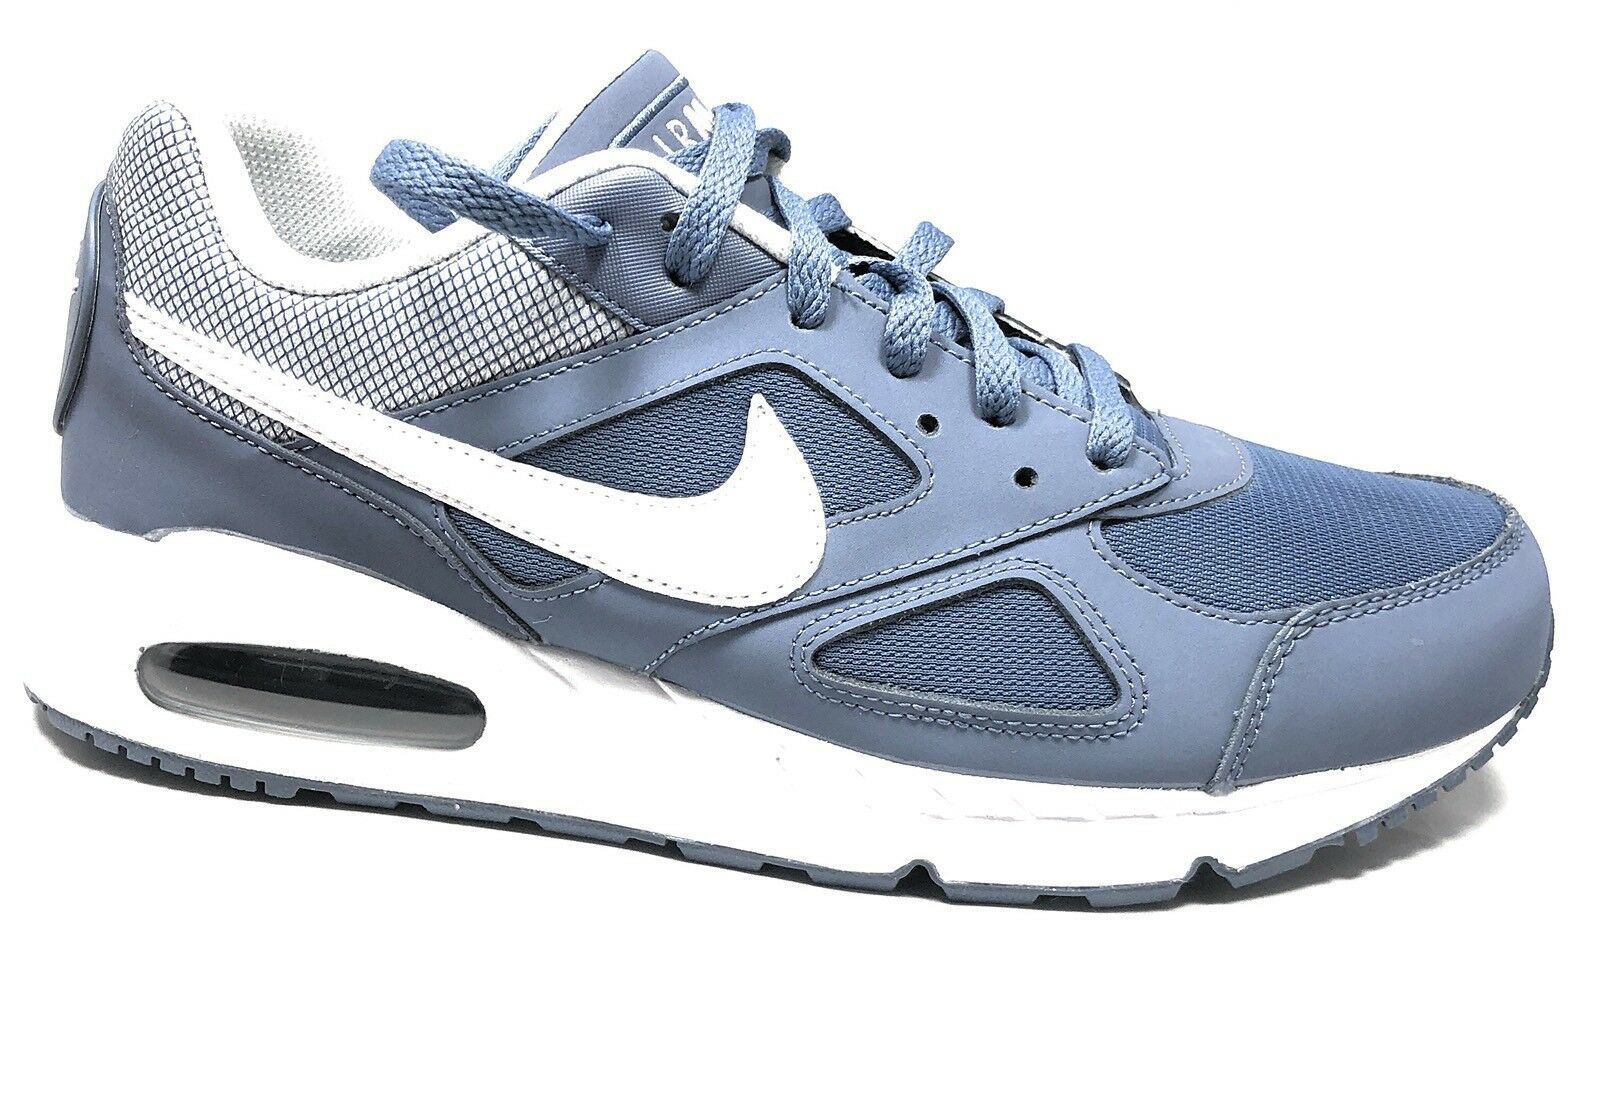 The latest discount shoes for men and women Nike Air Max Ivo 580518-414 Ocean Fog/White Mens Running Shoes Comfortable